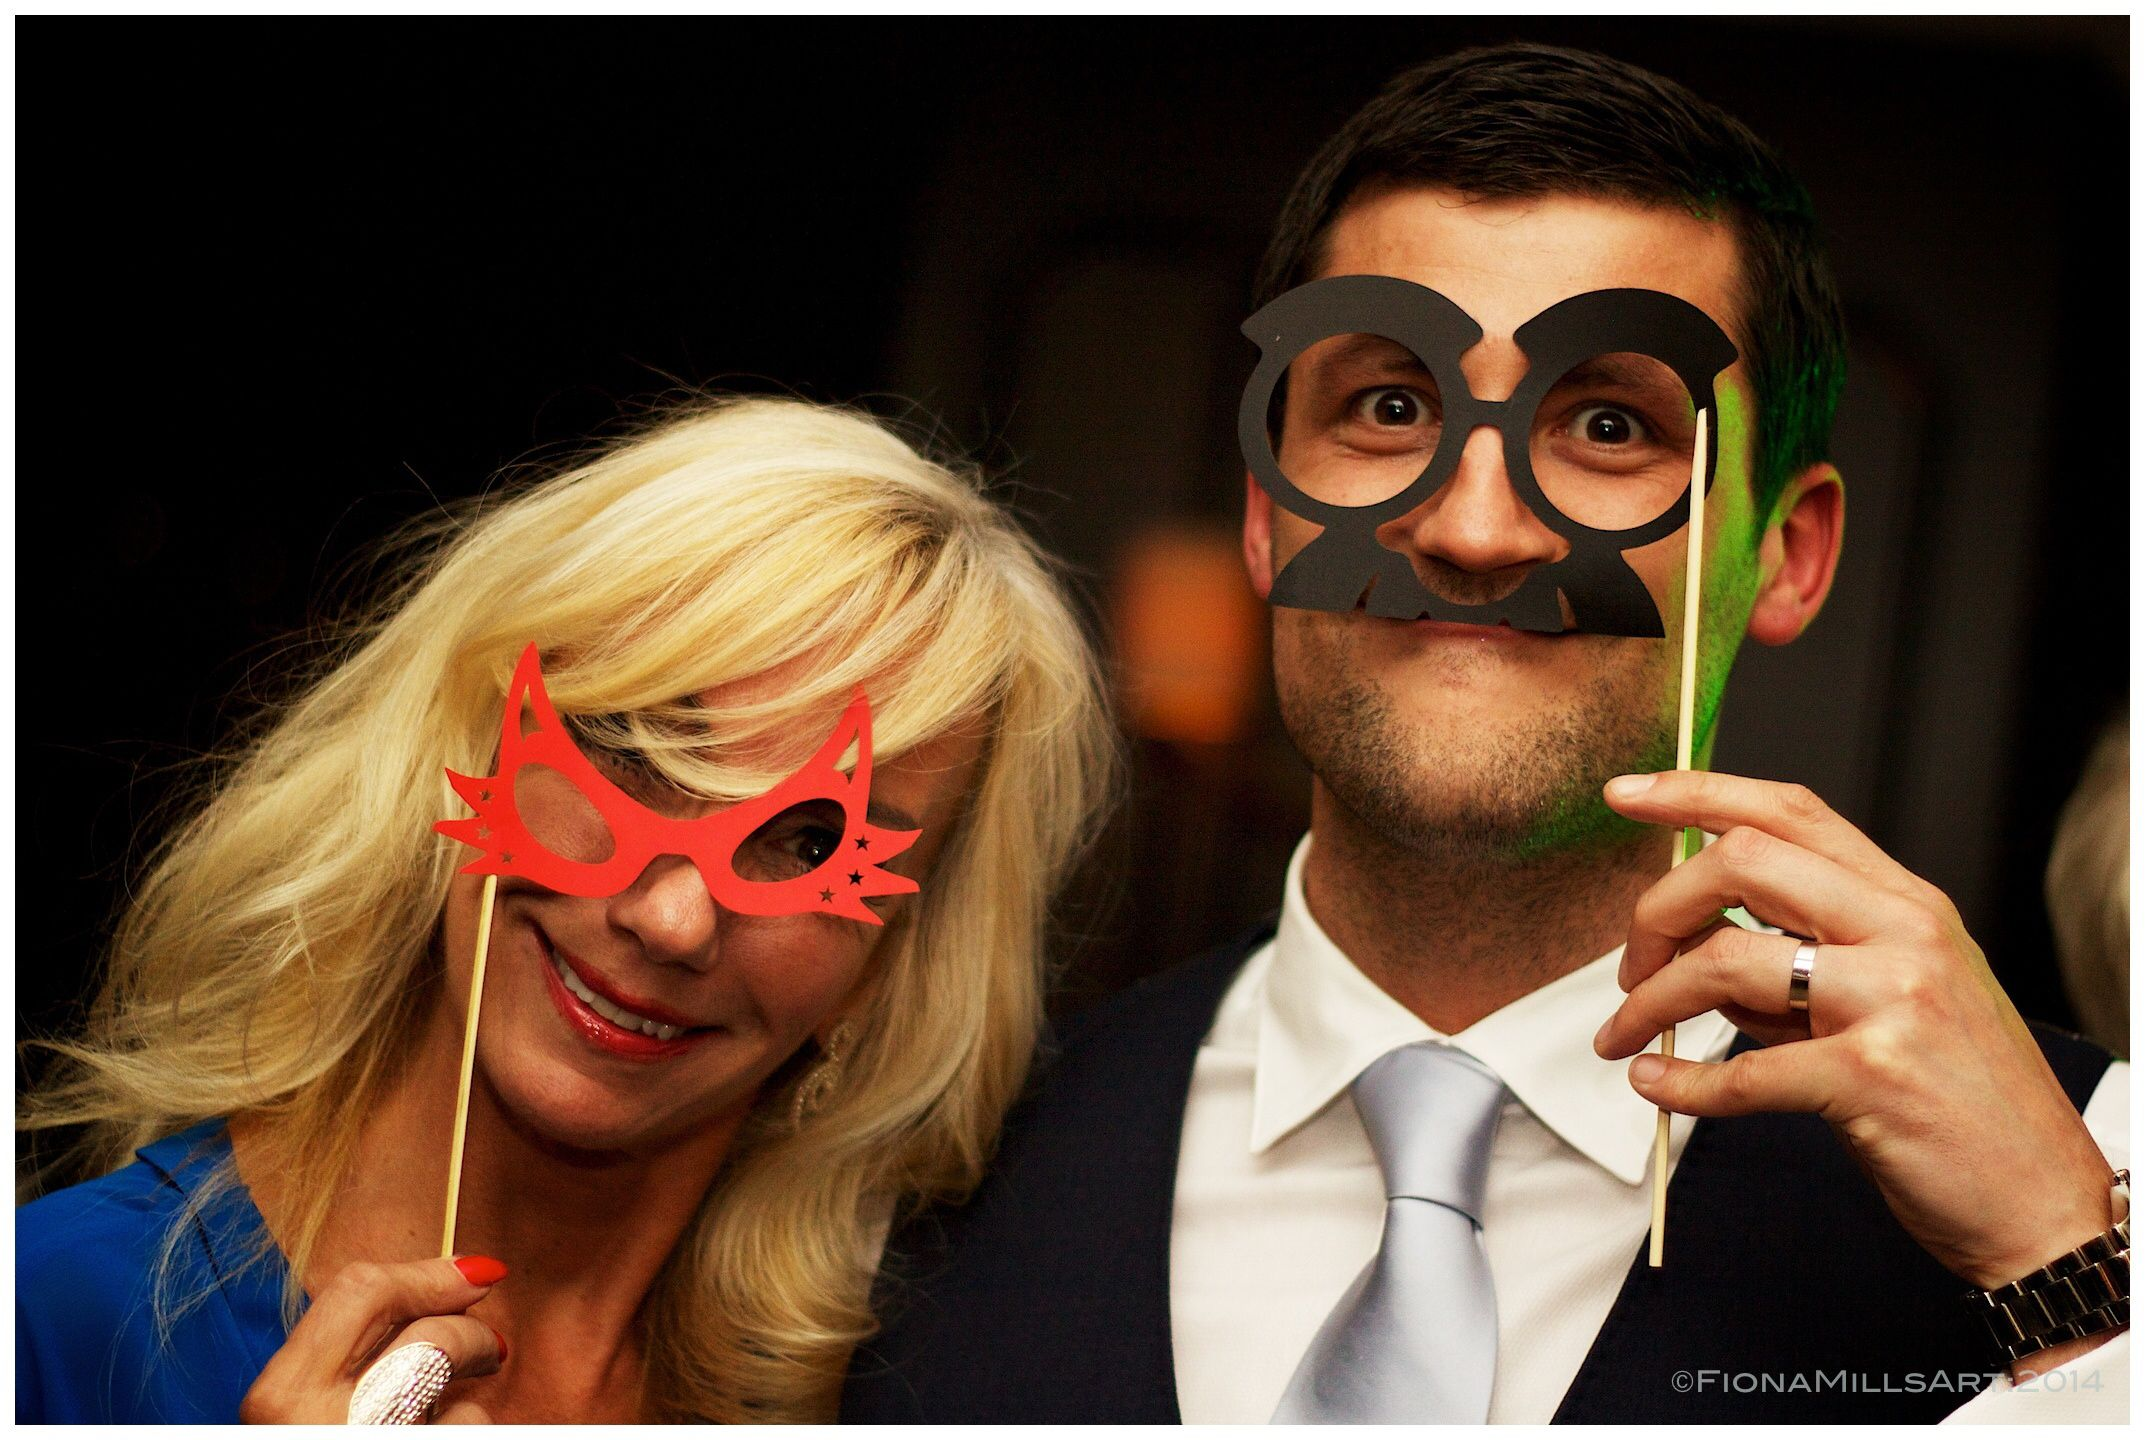 Charlie Chaplin Style Party Props To Inject Some Fun Into The Wedding Reception Photos